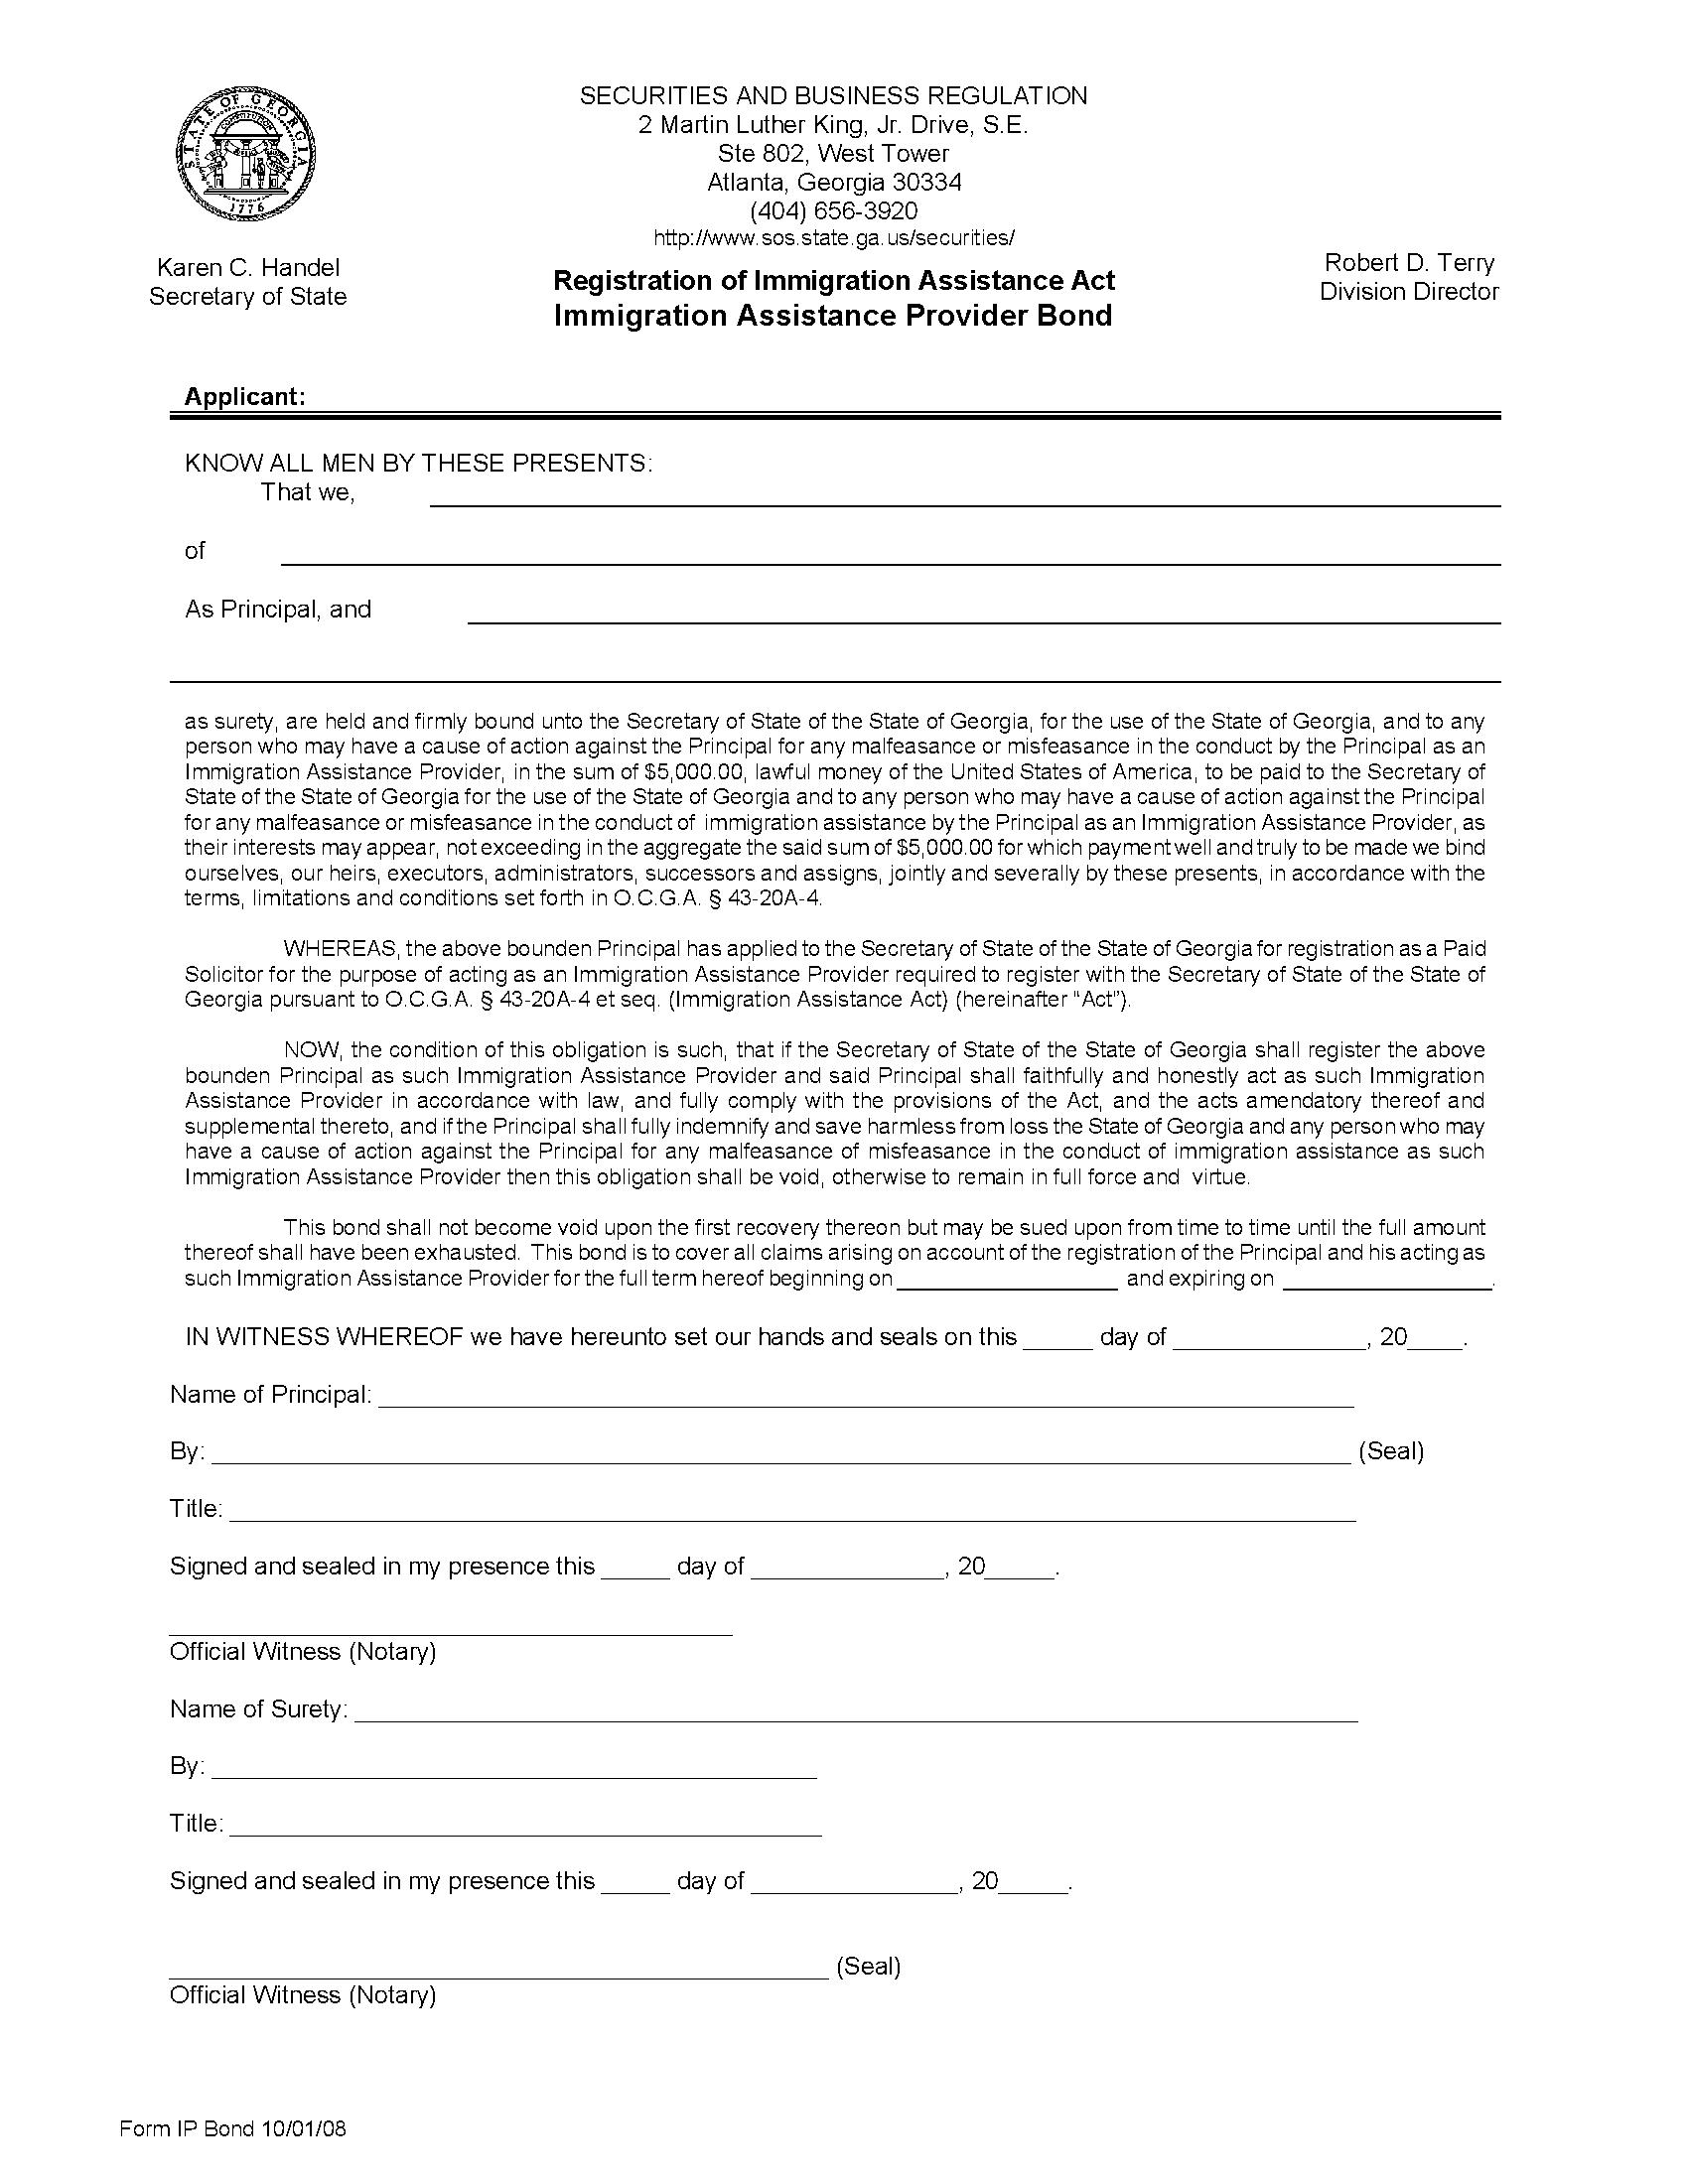 State of Georgia Immigration Assistance Provider sample image